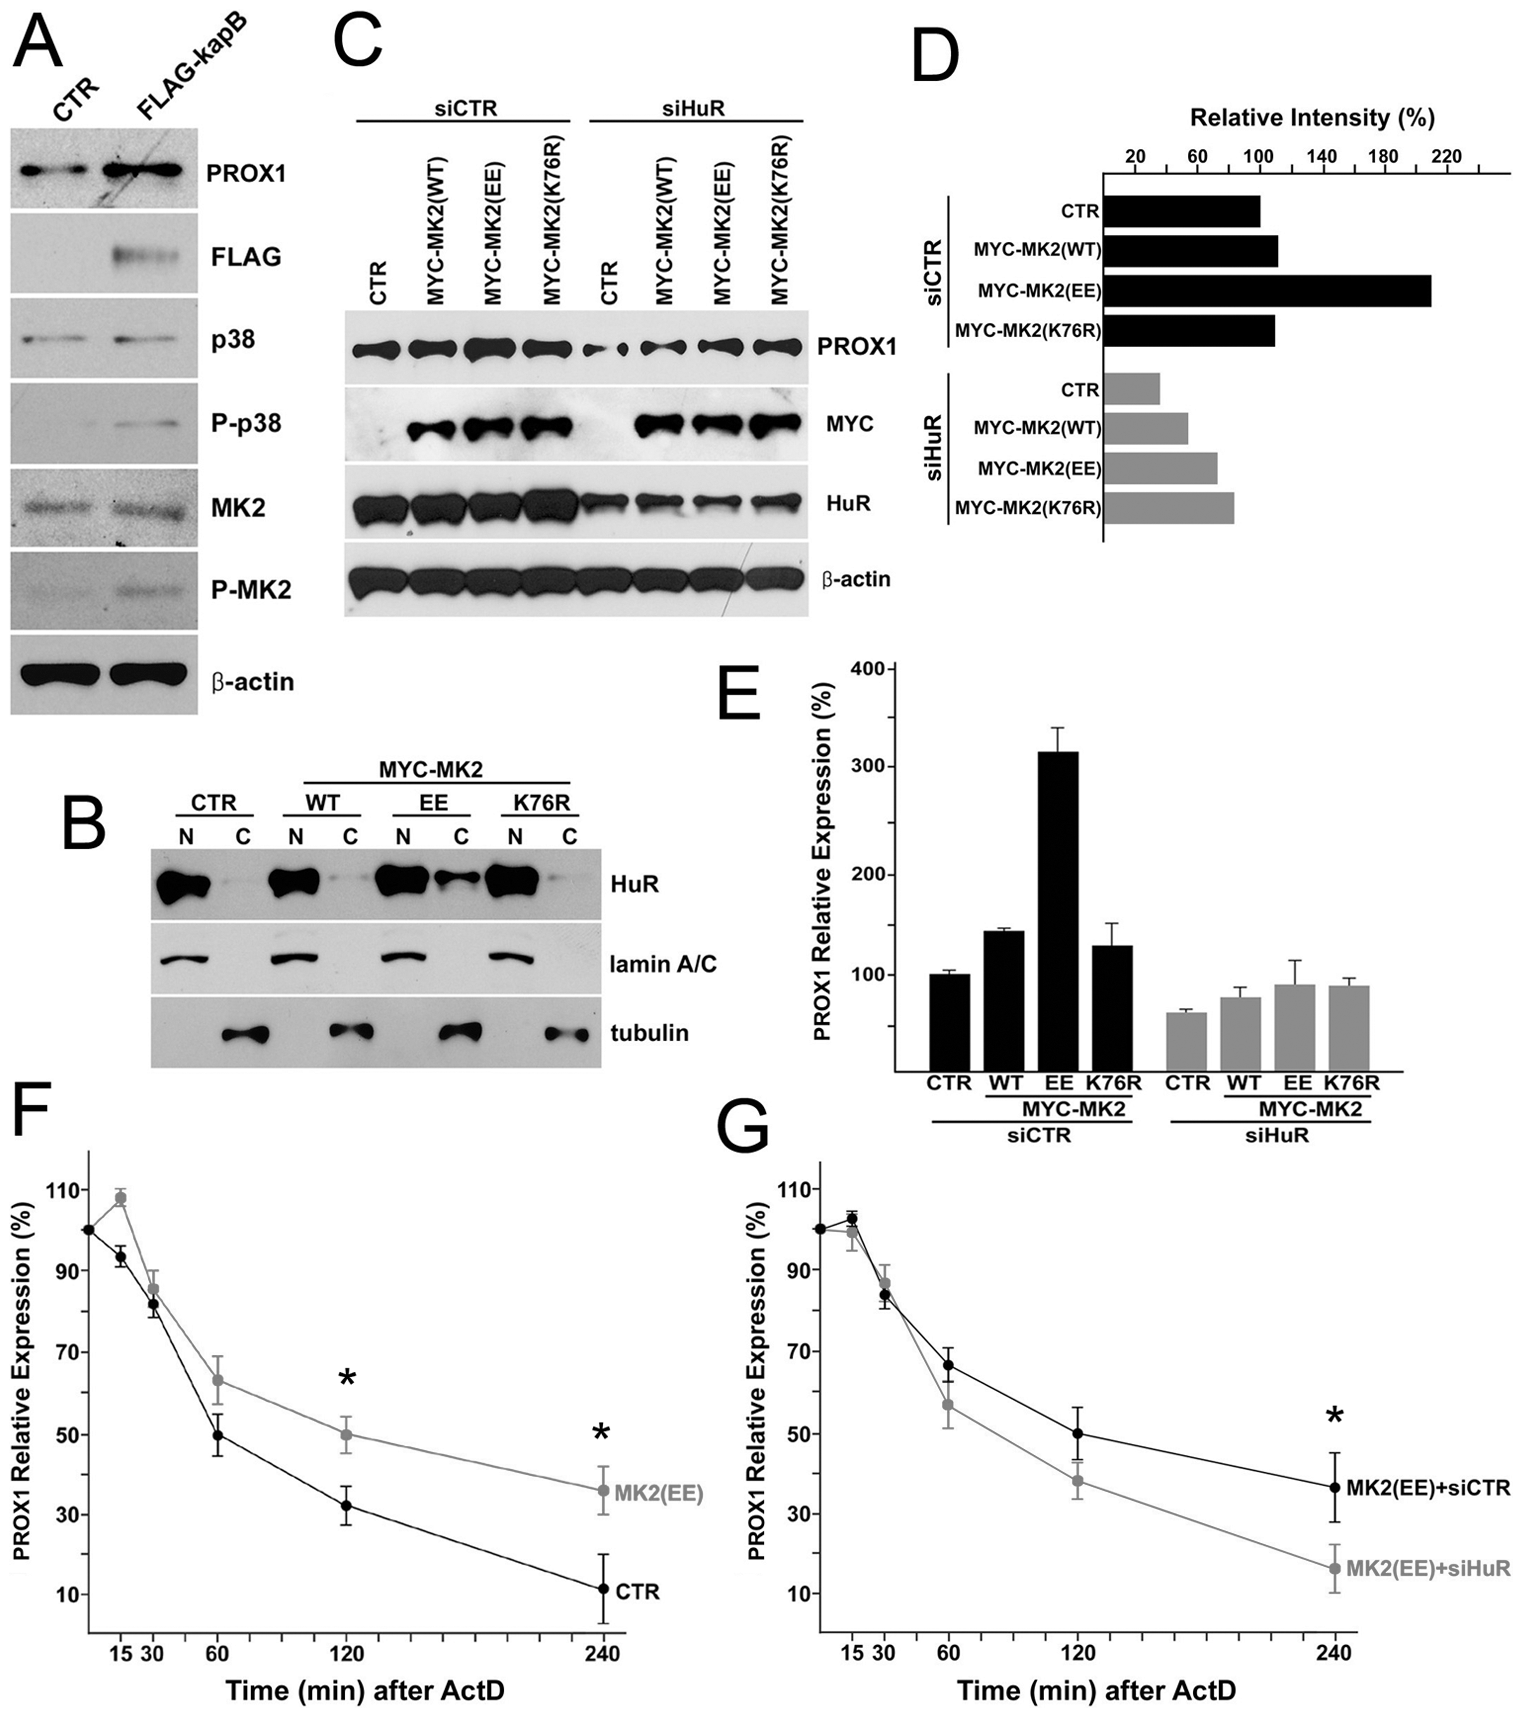 MK2 stimulated by kaposin-B activates the cytoplasmic accumulation of HuR protein and upregulates PROX1 mRNA stability.